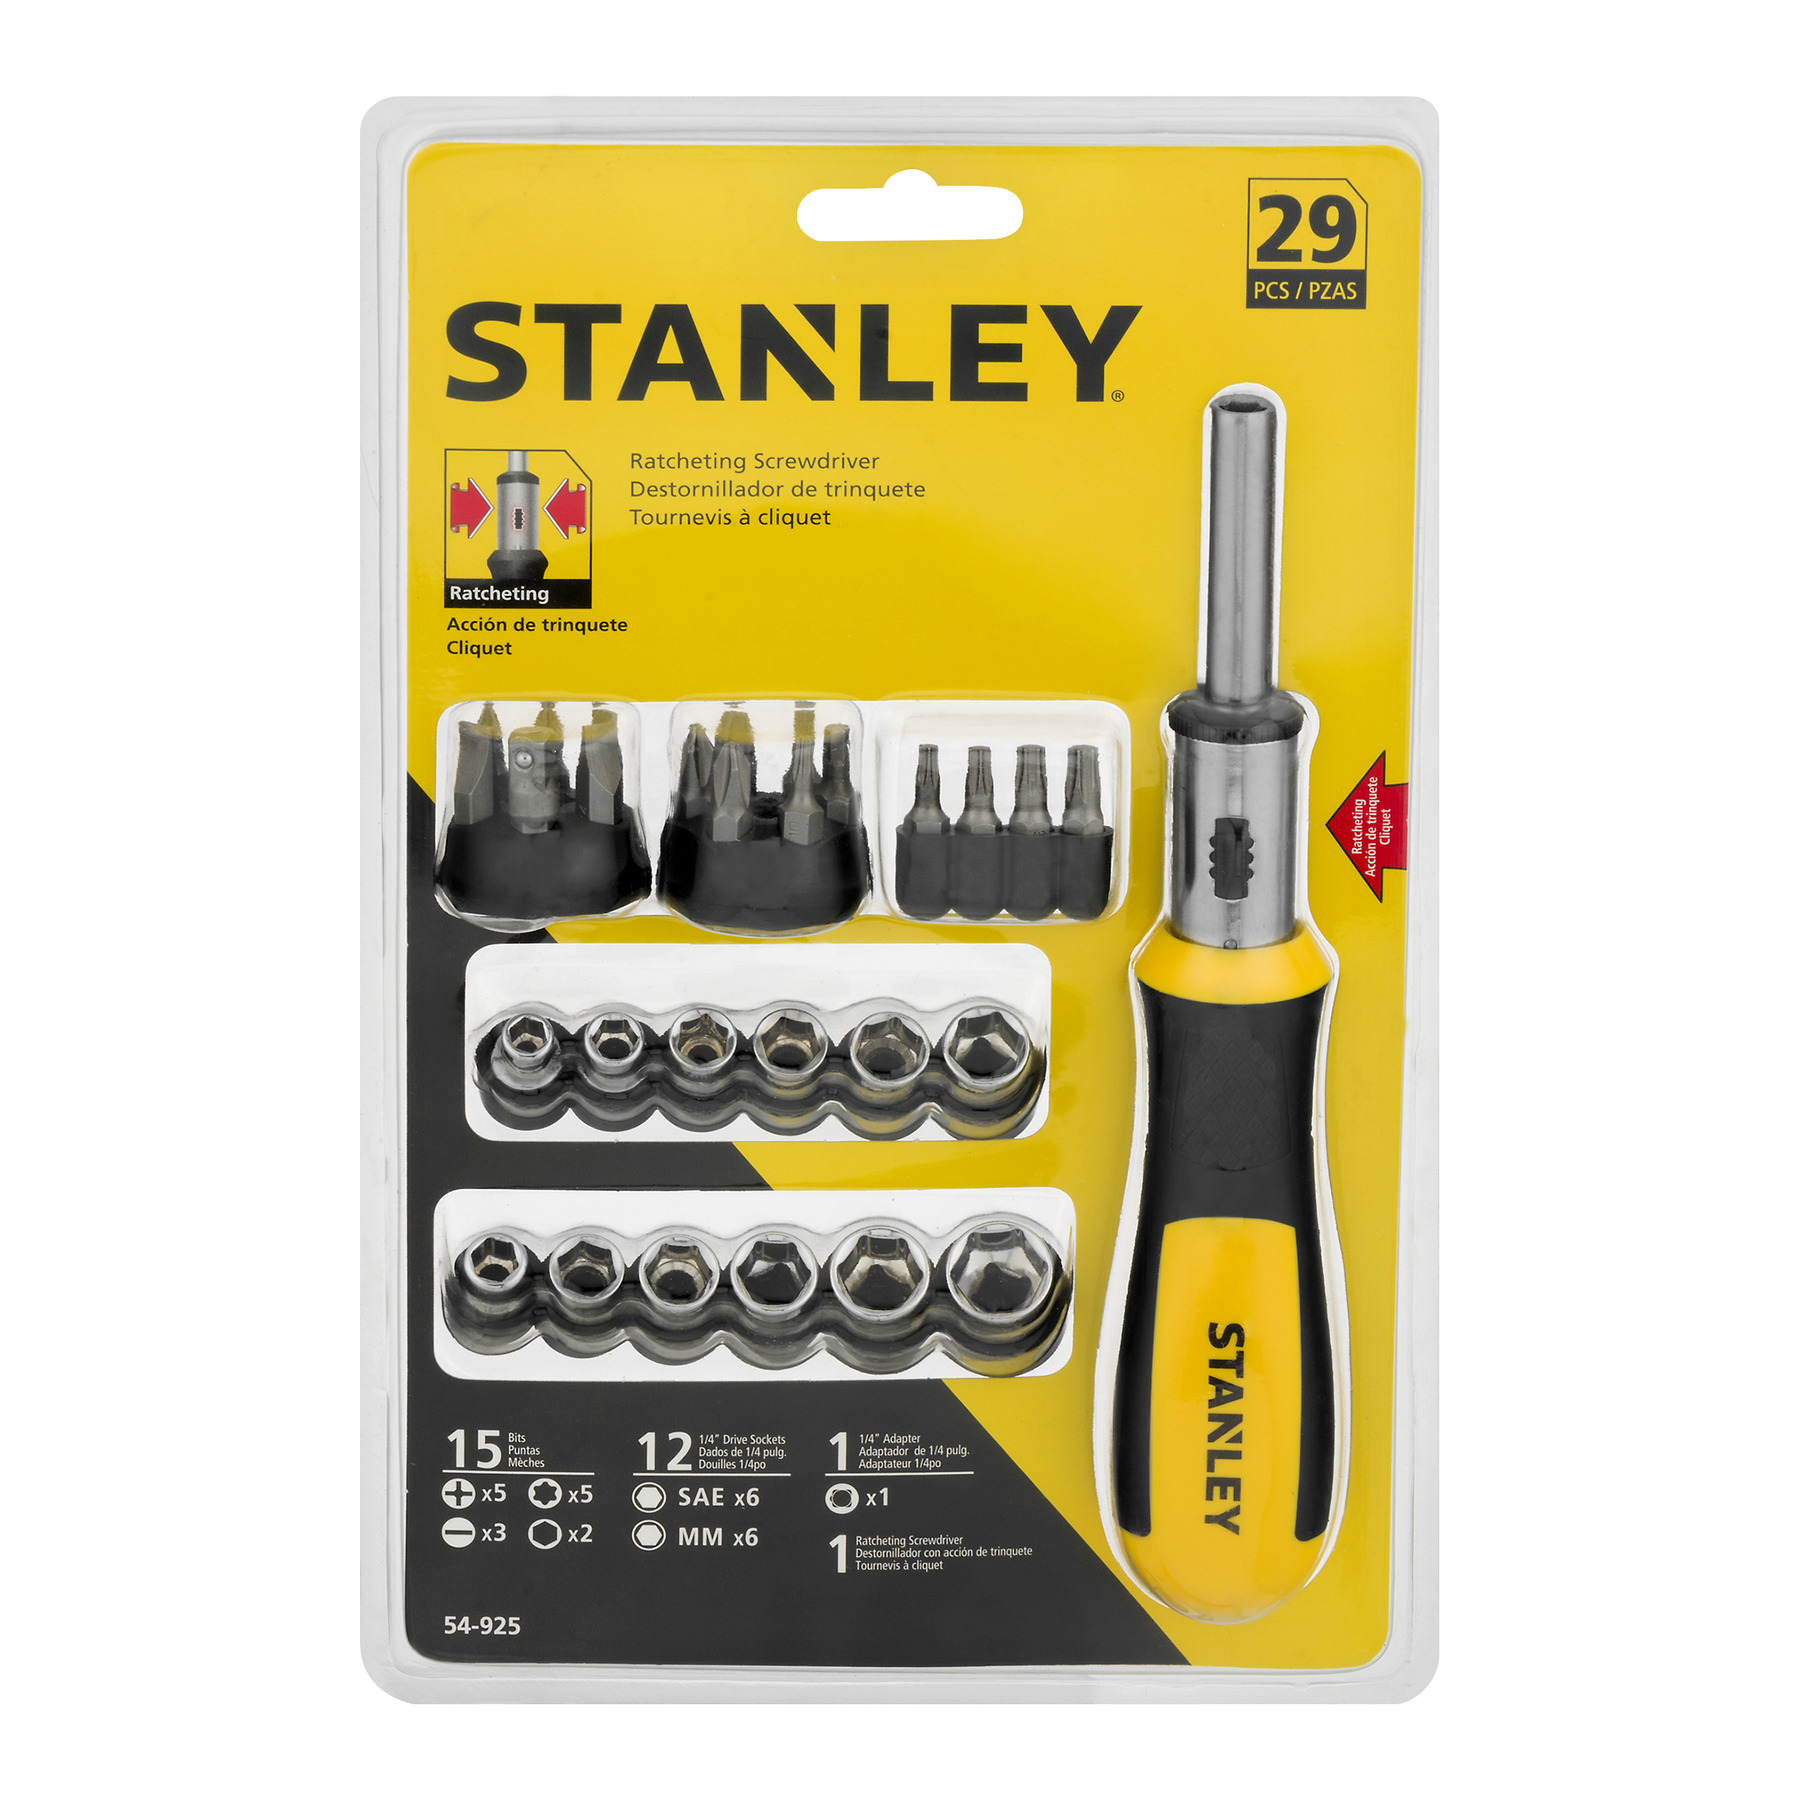 Stanley Ratcheting Screwdriver - 29 PC, 29.0 PIECE(S)